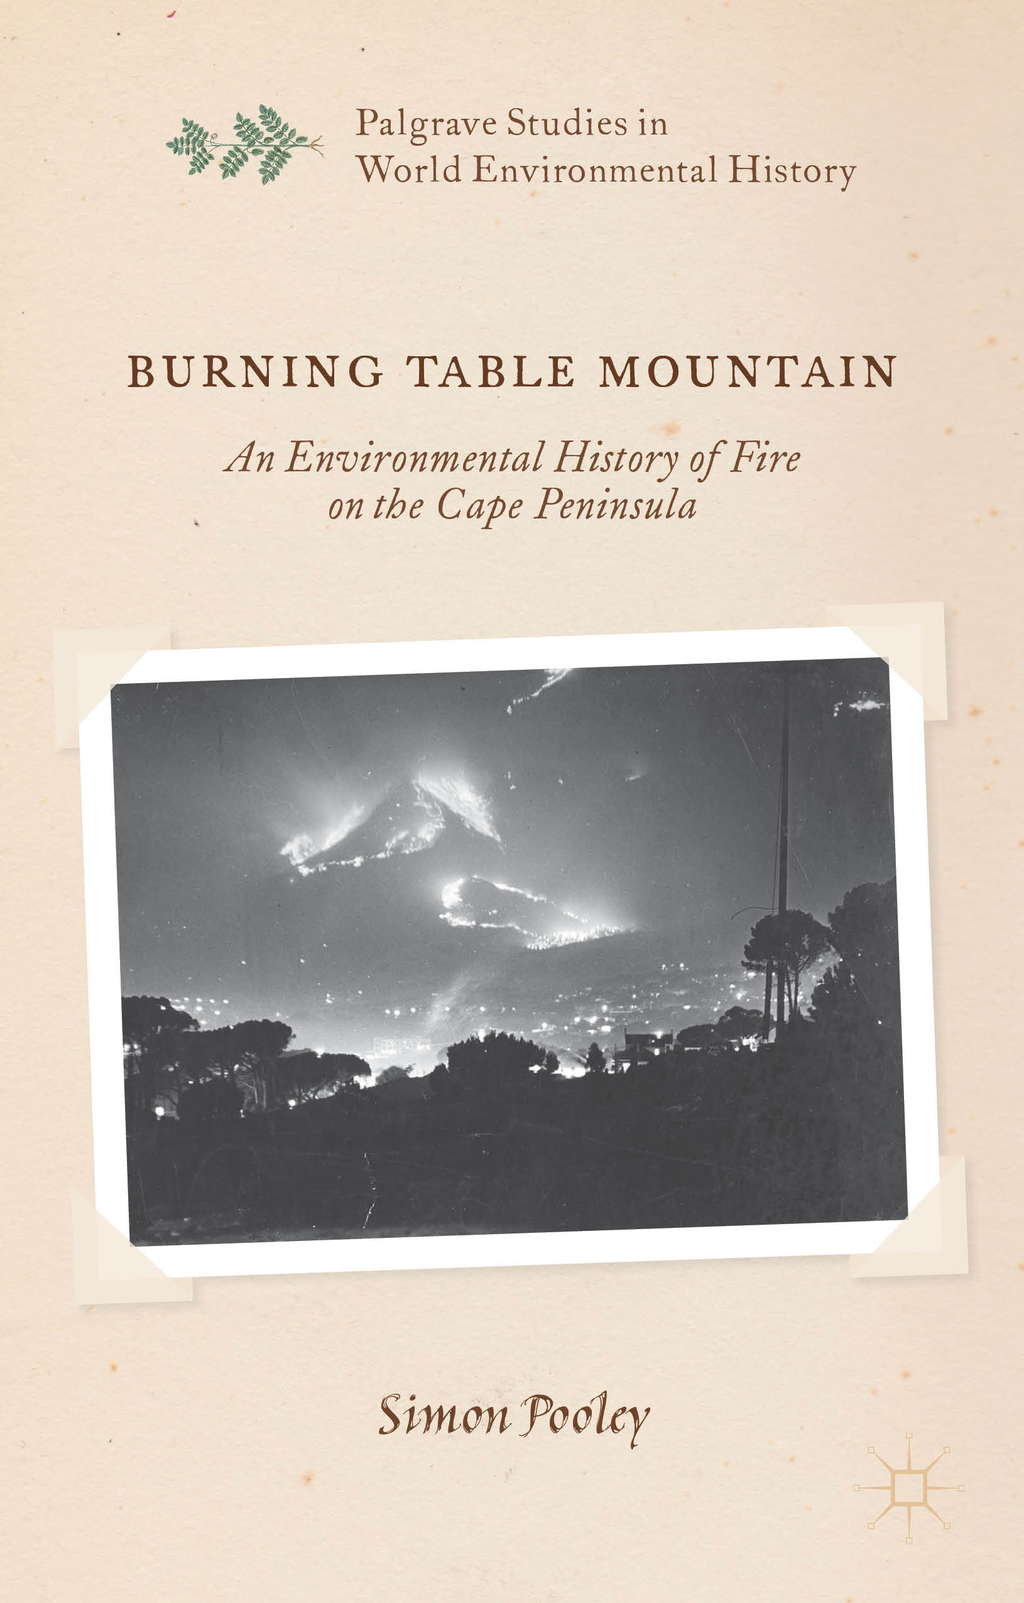 Burning Table Mountain An Environmental History of Fire on the Cape Peninsula